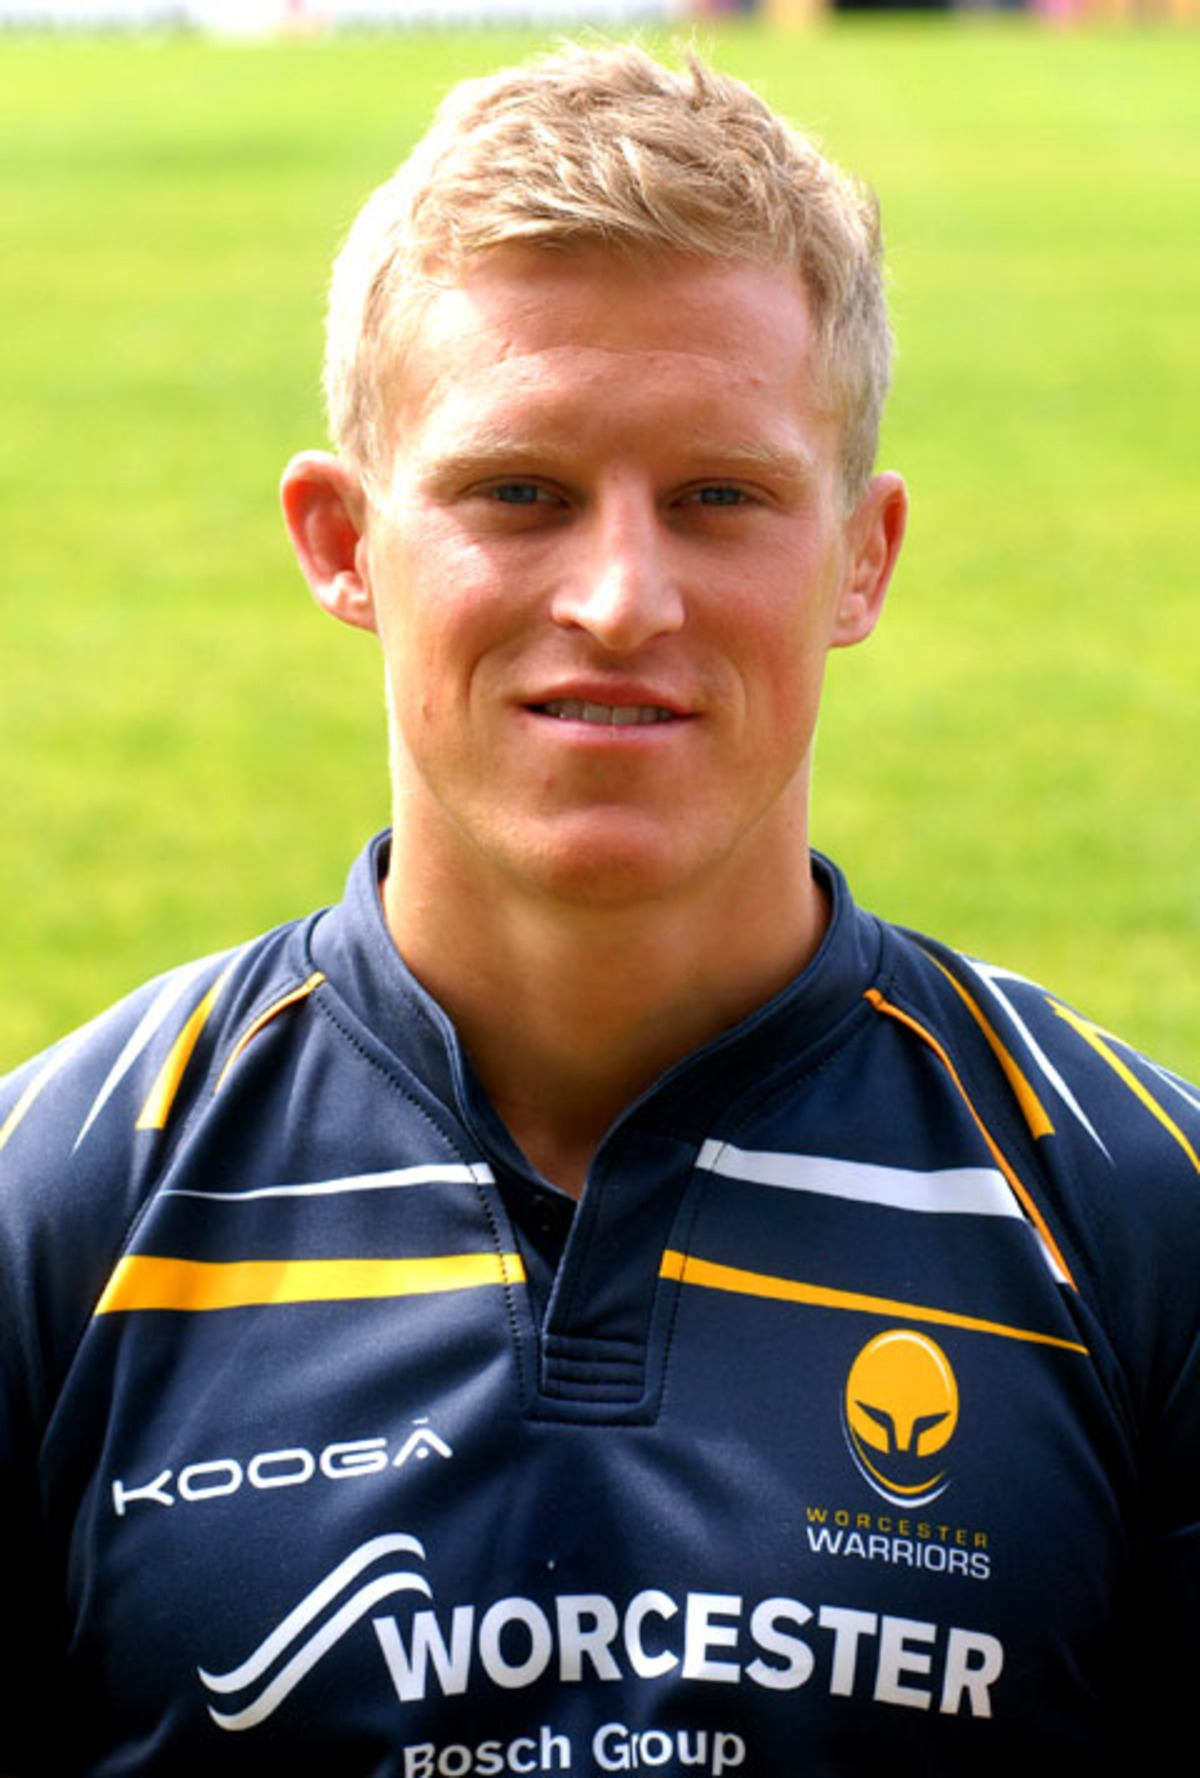 Worcester Warriors player Jake Abbott is hoping to boost publicity for Acorns